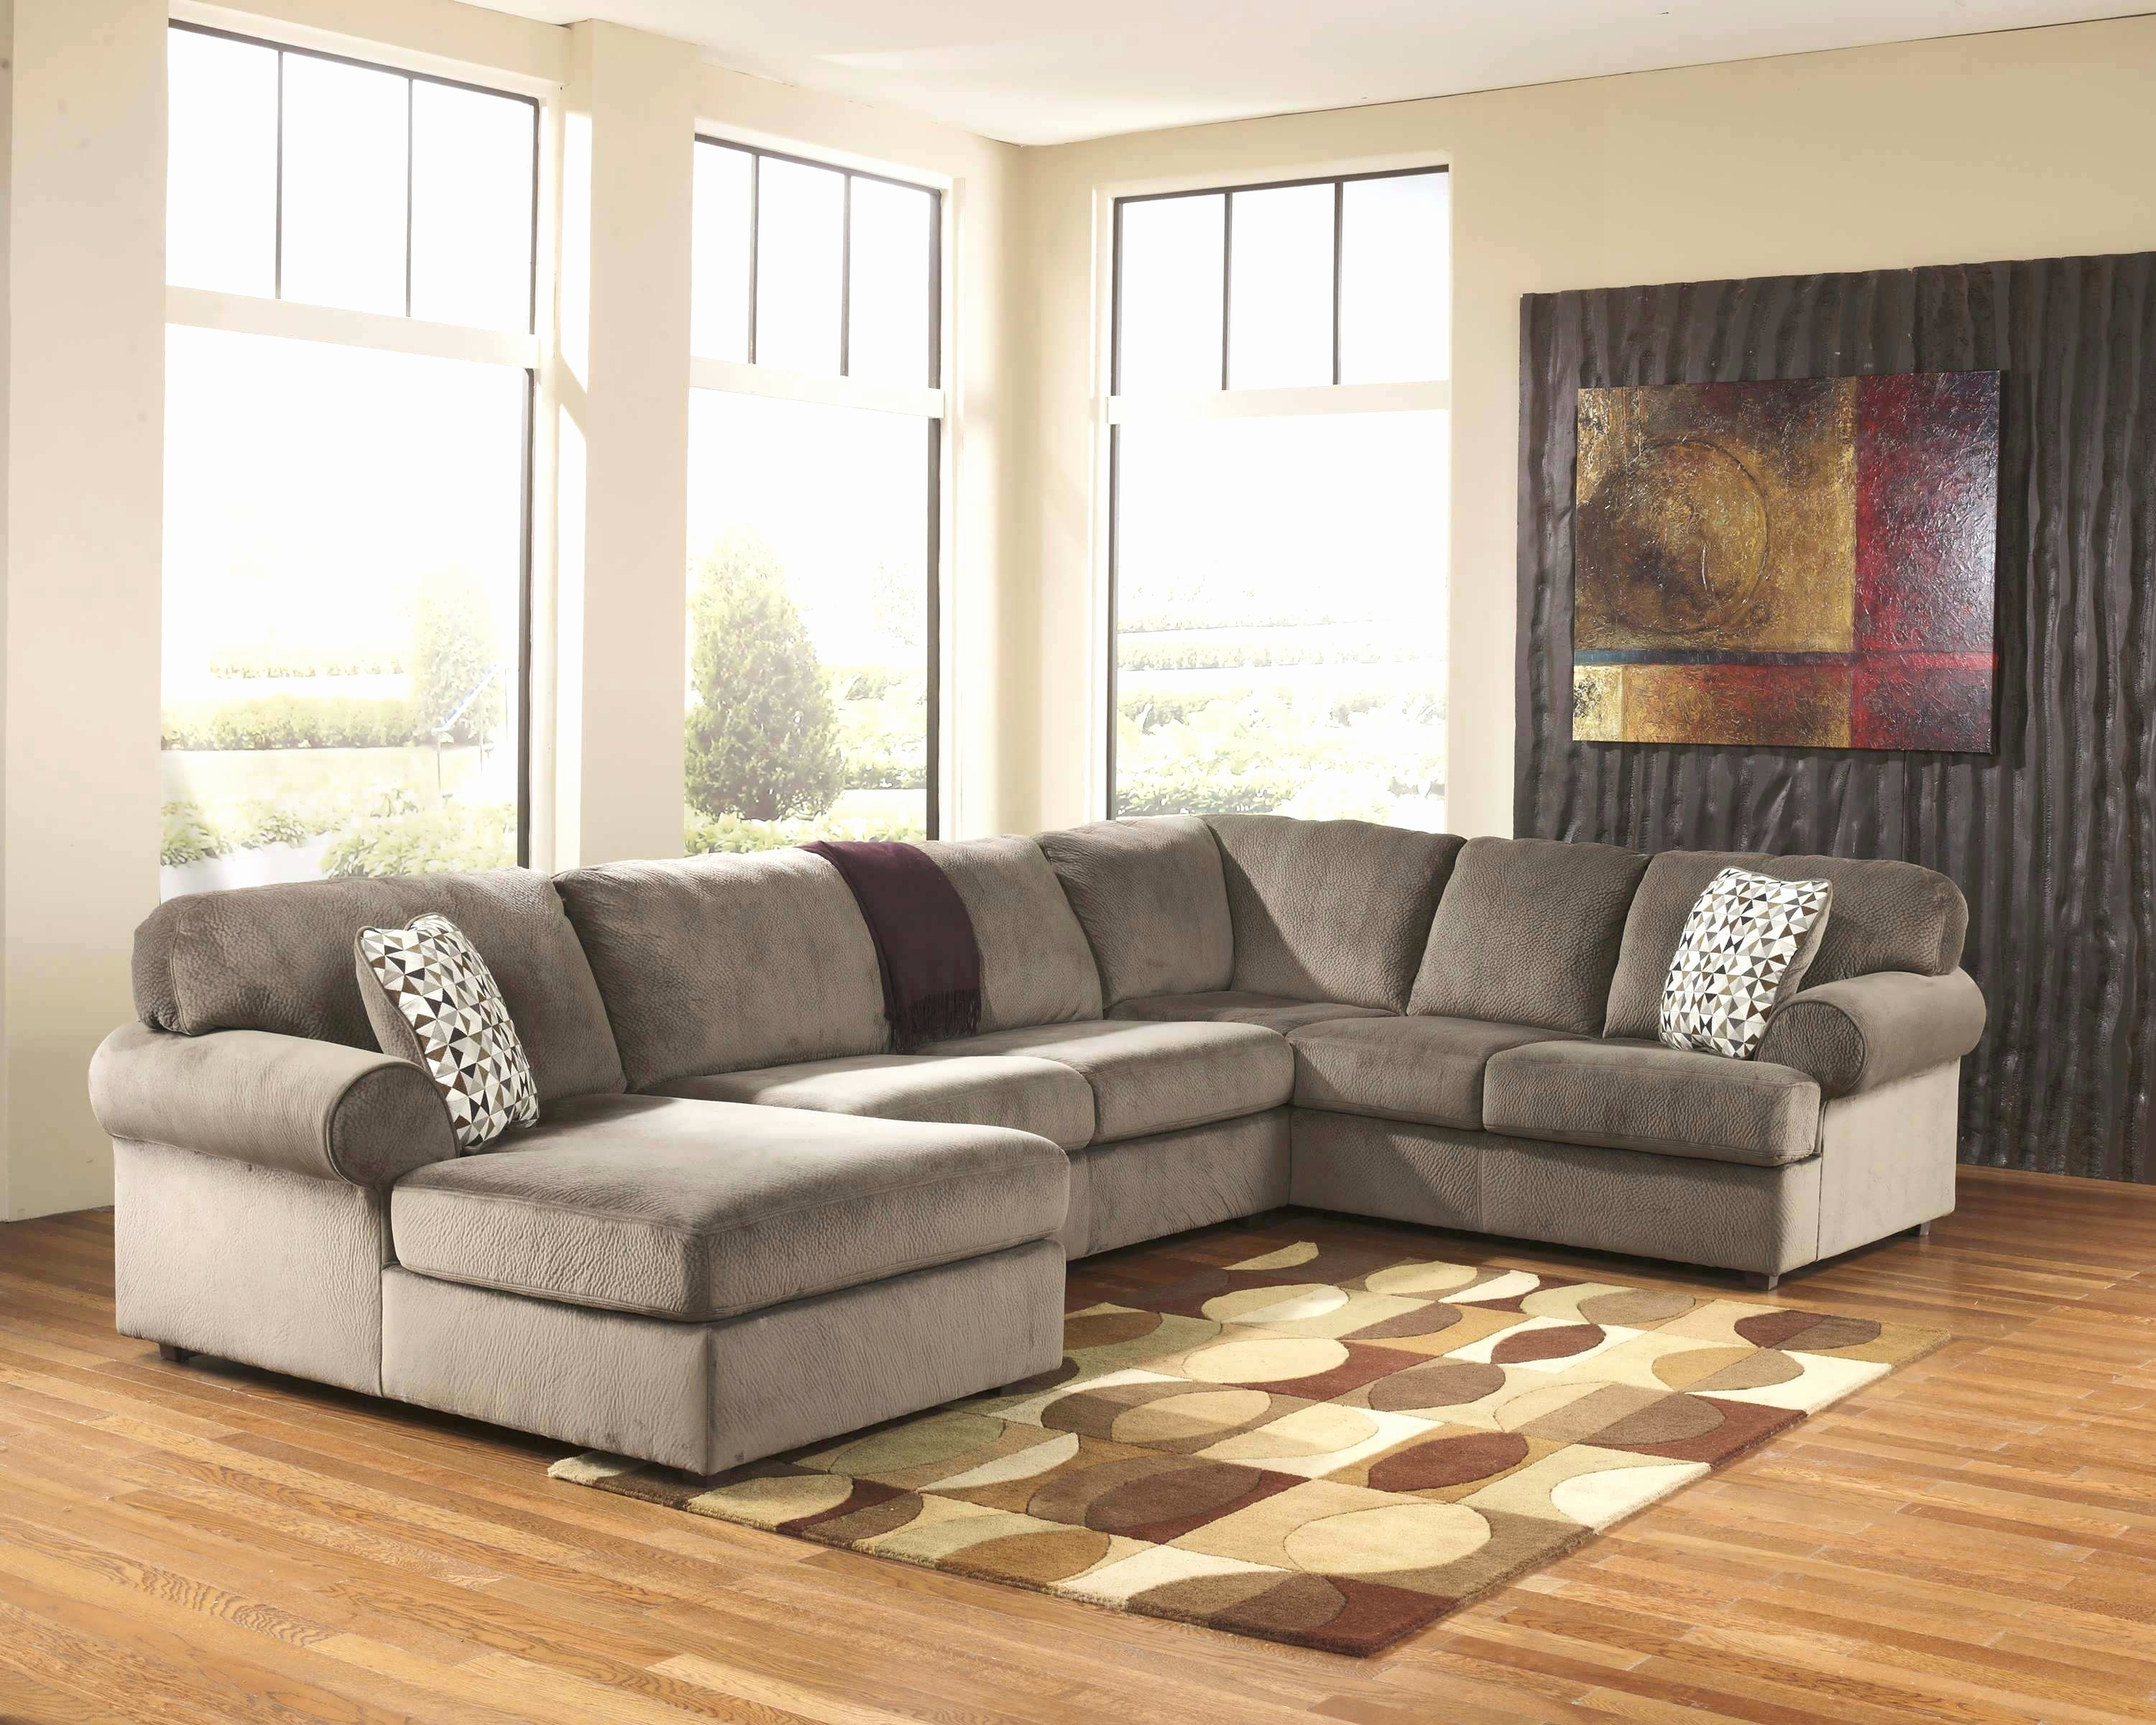 Awesome Sectional Sofa Montreal 2018 – Couches Ideas Within Kijiji Montreal Sectional Sofas (View 7 of 10)